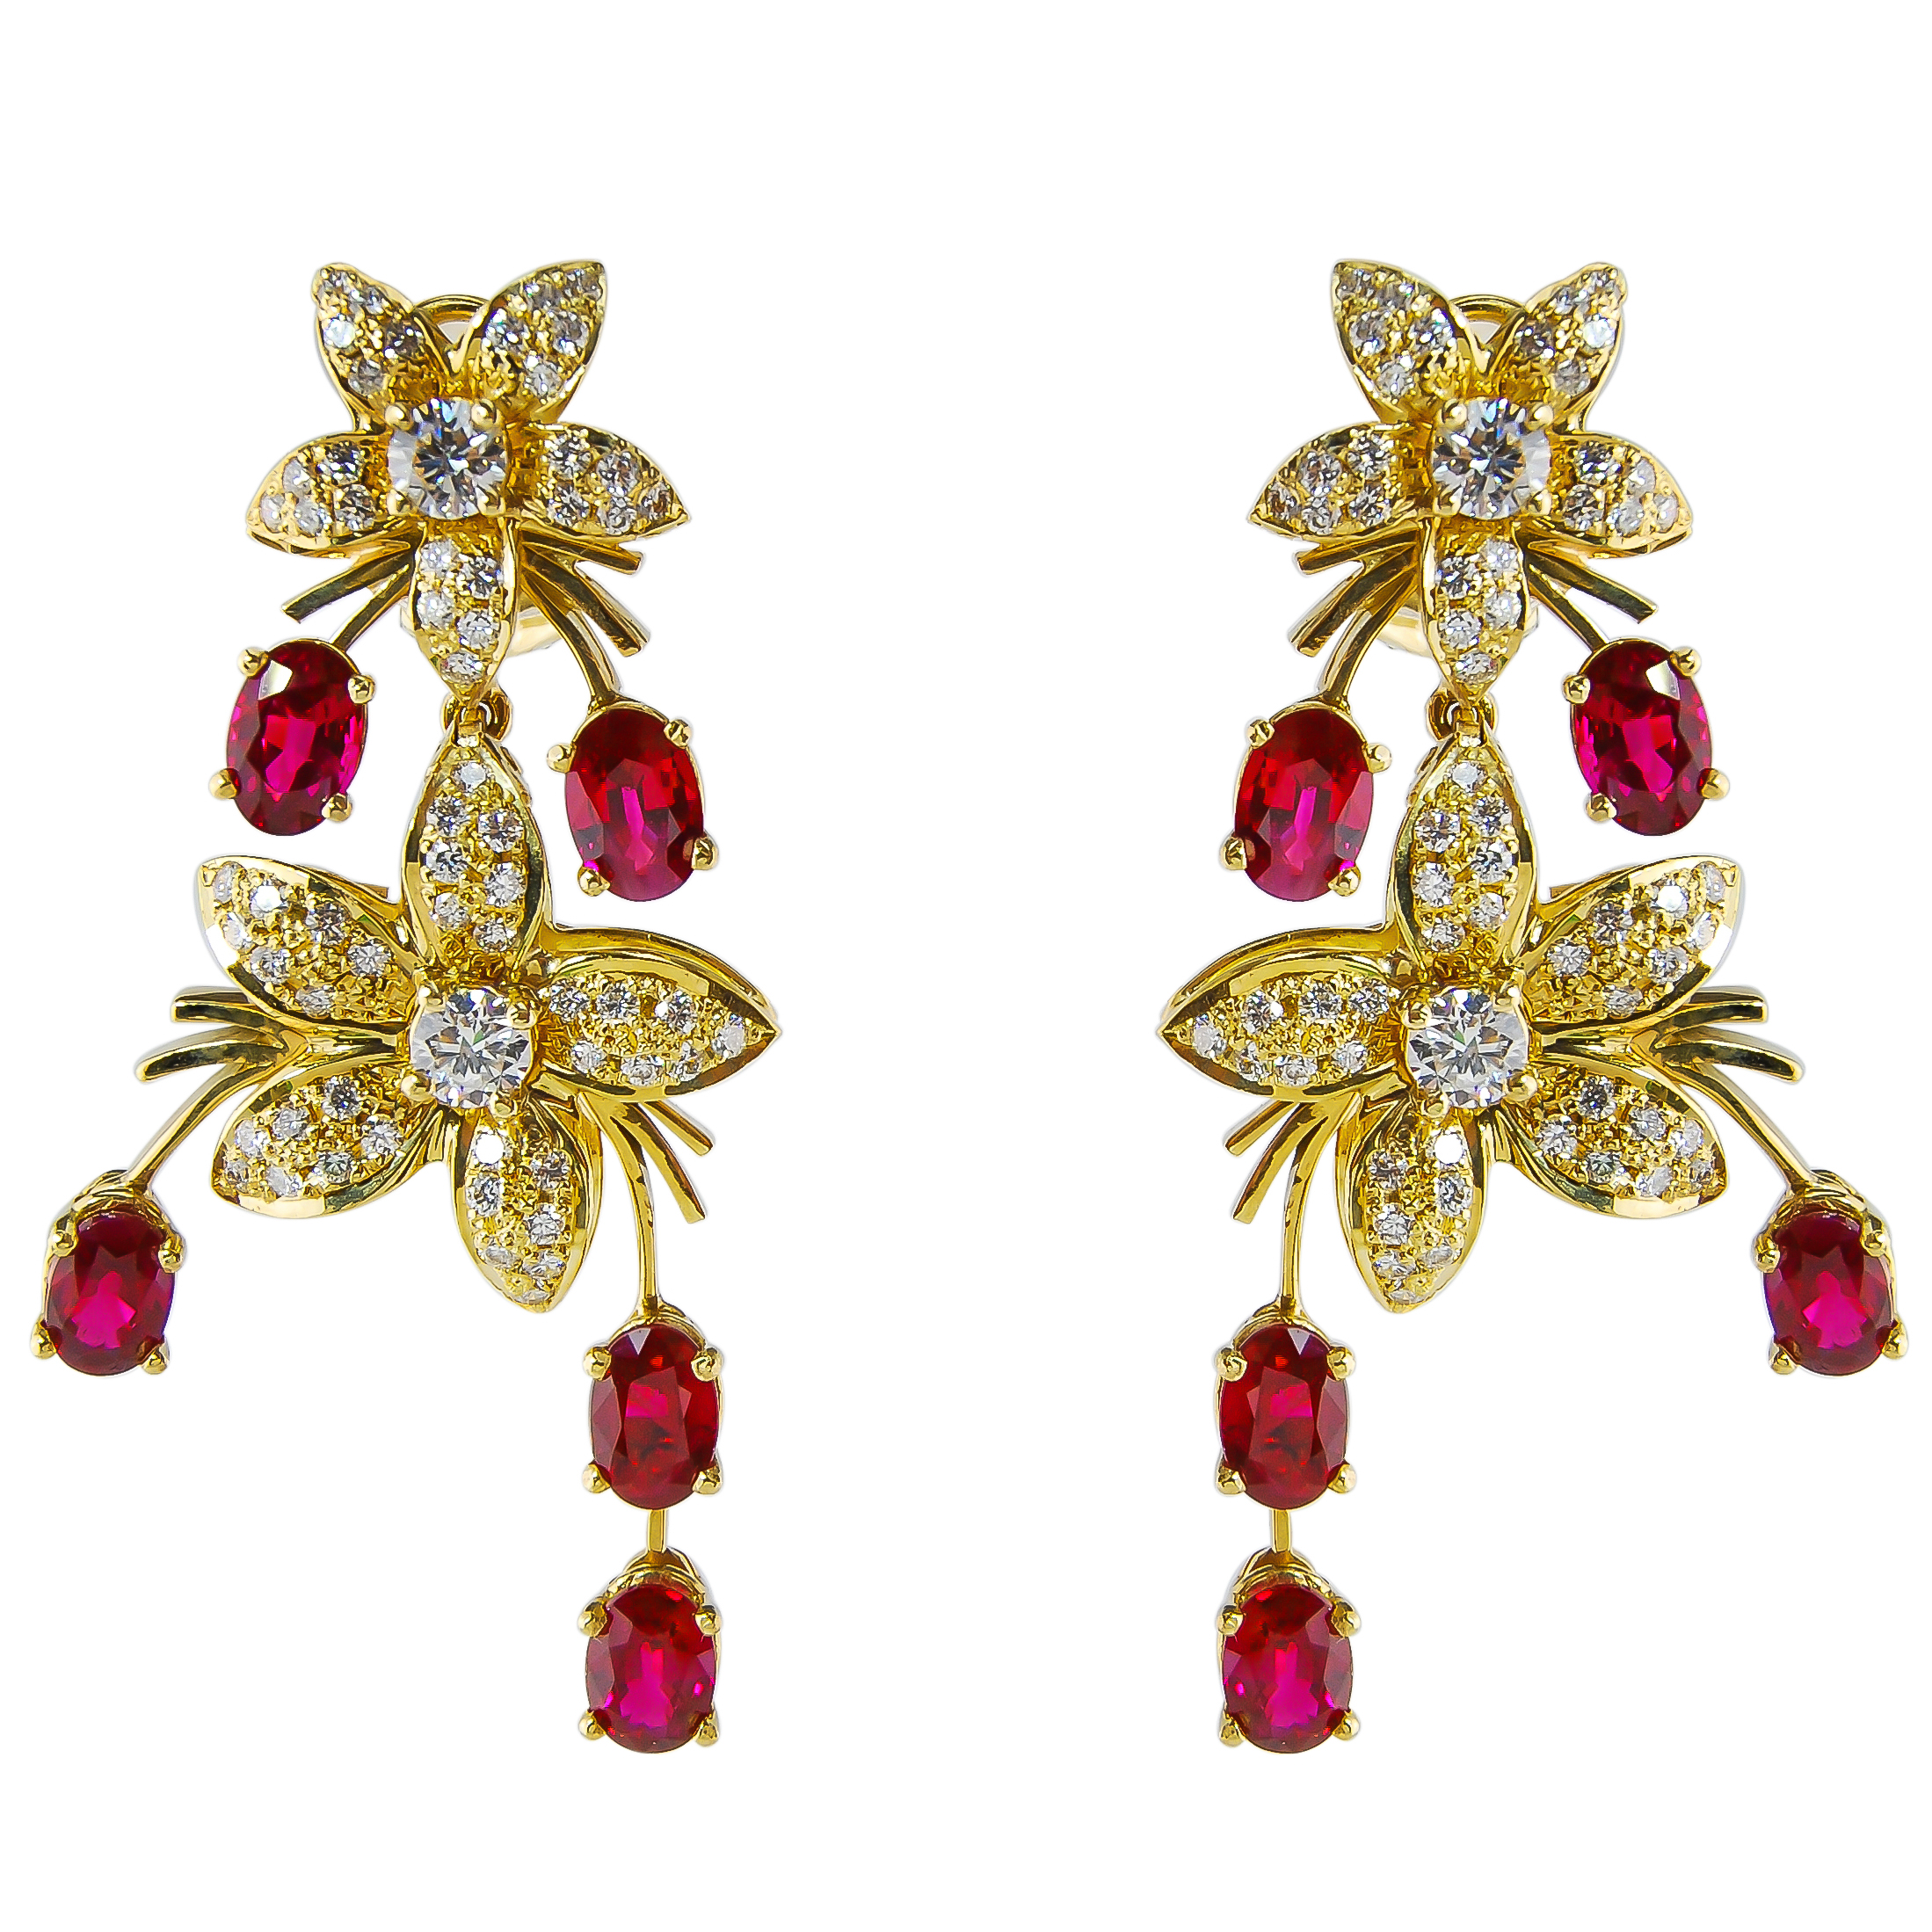 Ruby & Diamond Earrings from the Jasmine Collection at Kaufmann de Suisse